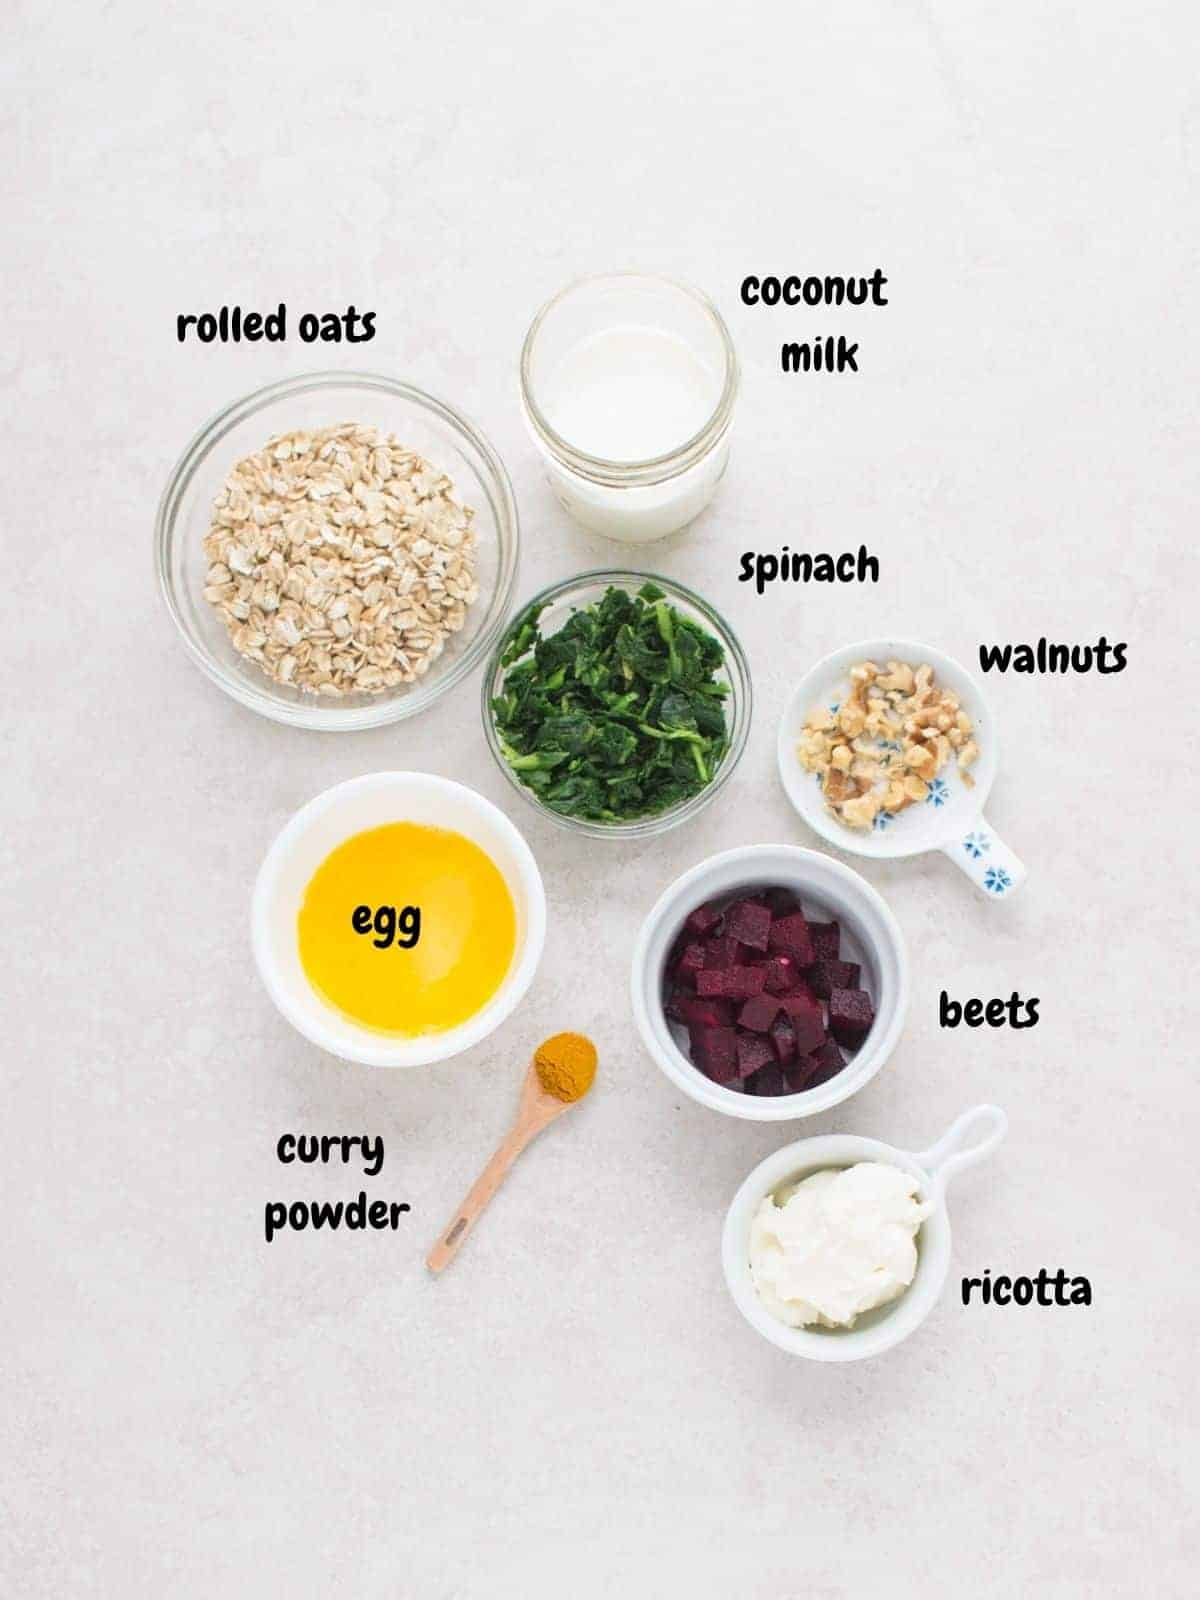 all the ingredients placed on top of a white background